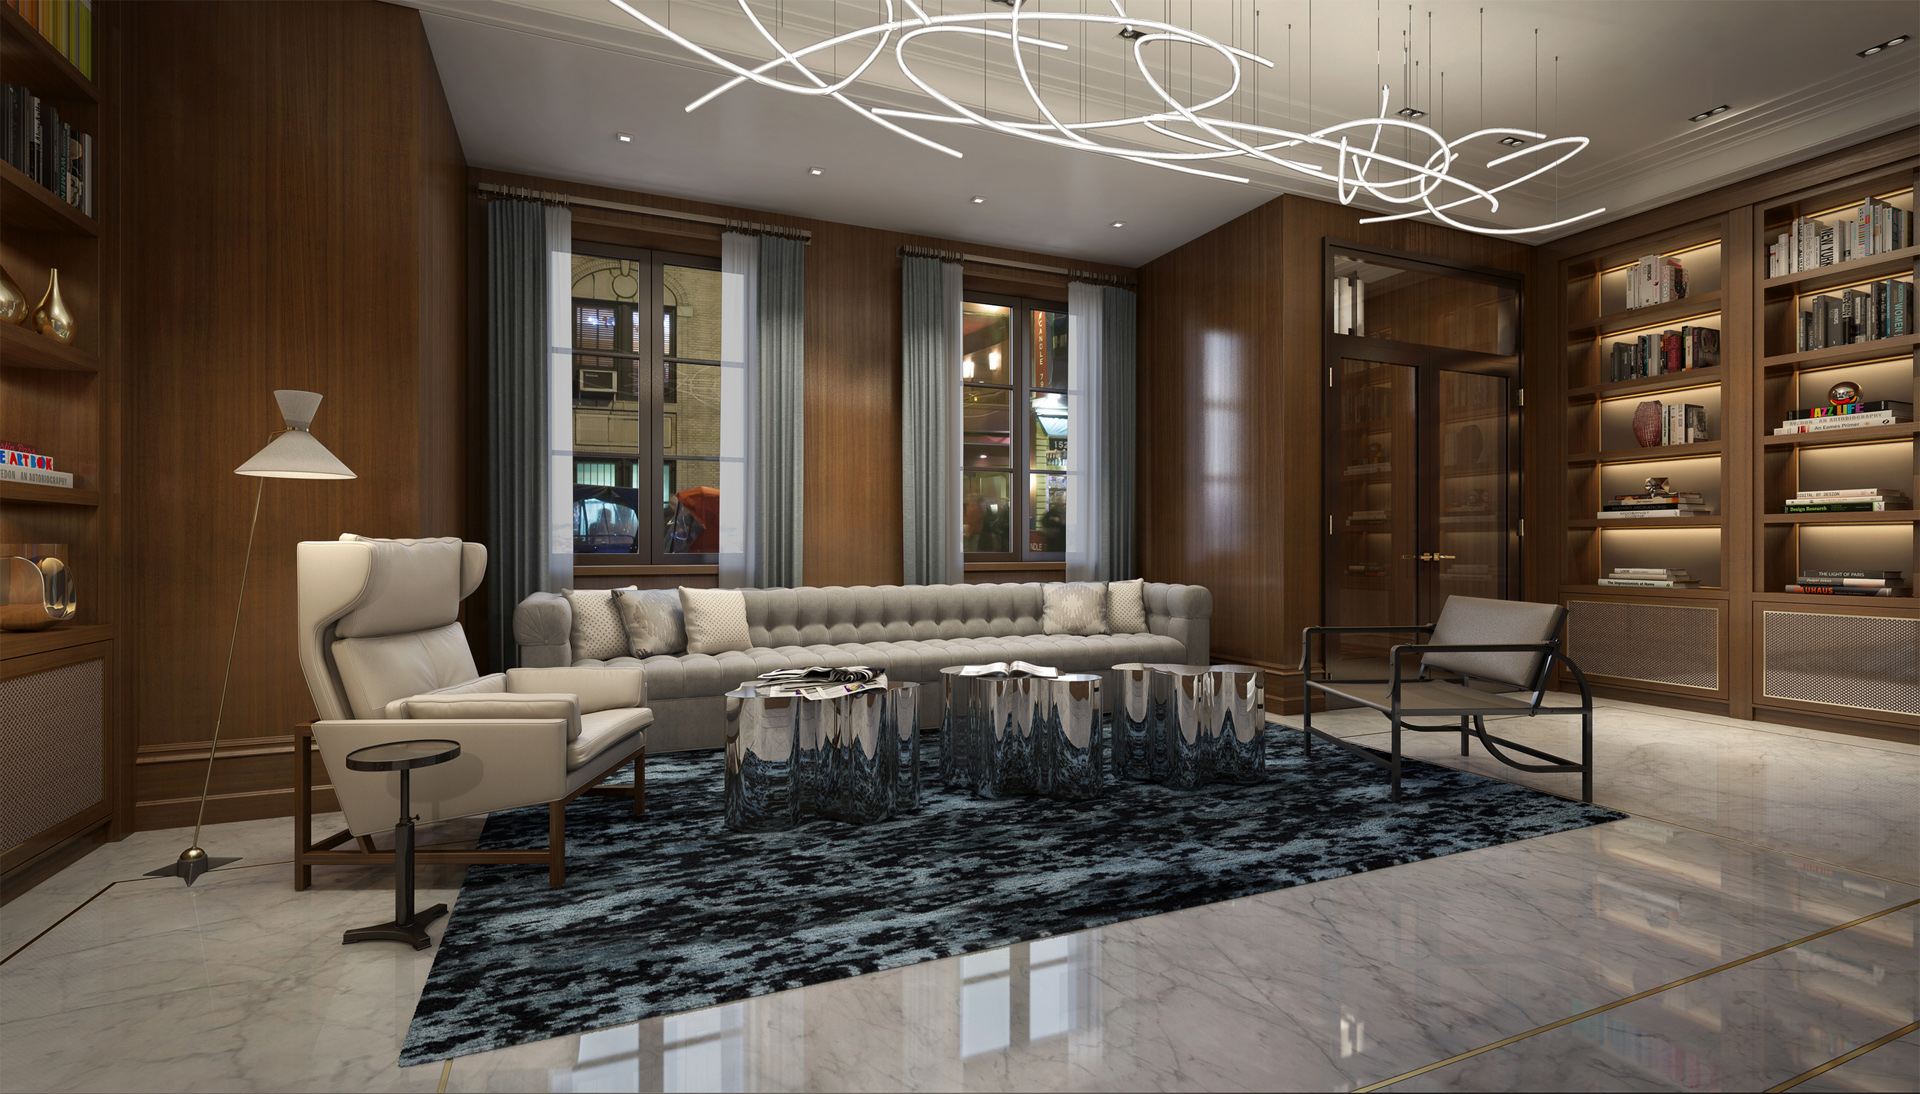 Discover the Very Best Interior Designers in New York City (1) best interior designers Discover the Very Best Interior Designers in New York City Discover the Very Best Interior Designers in New York City 1